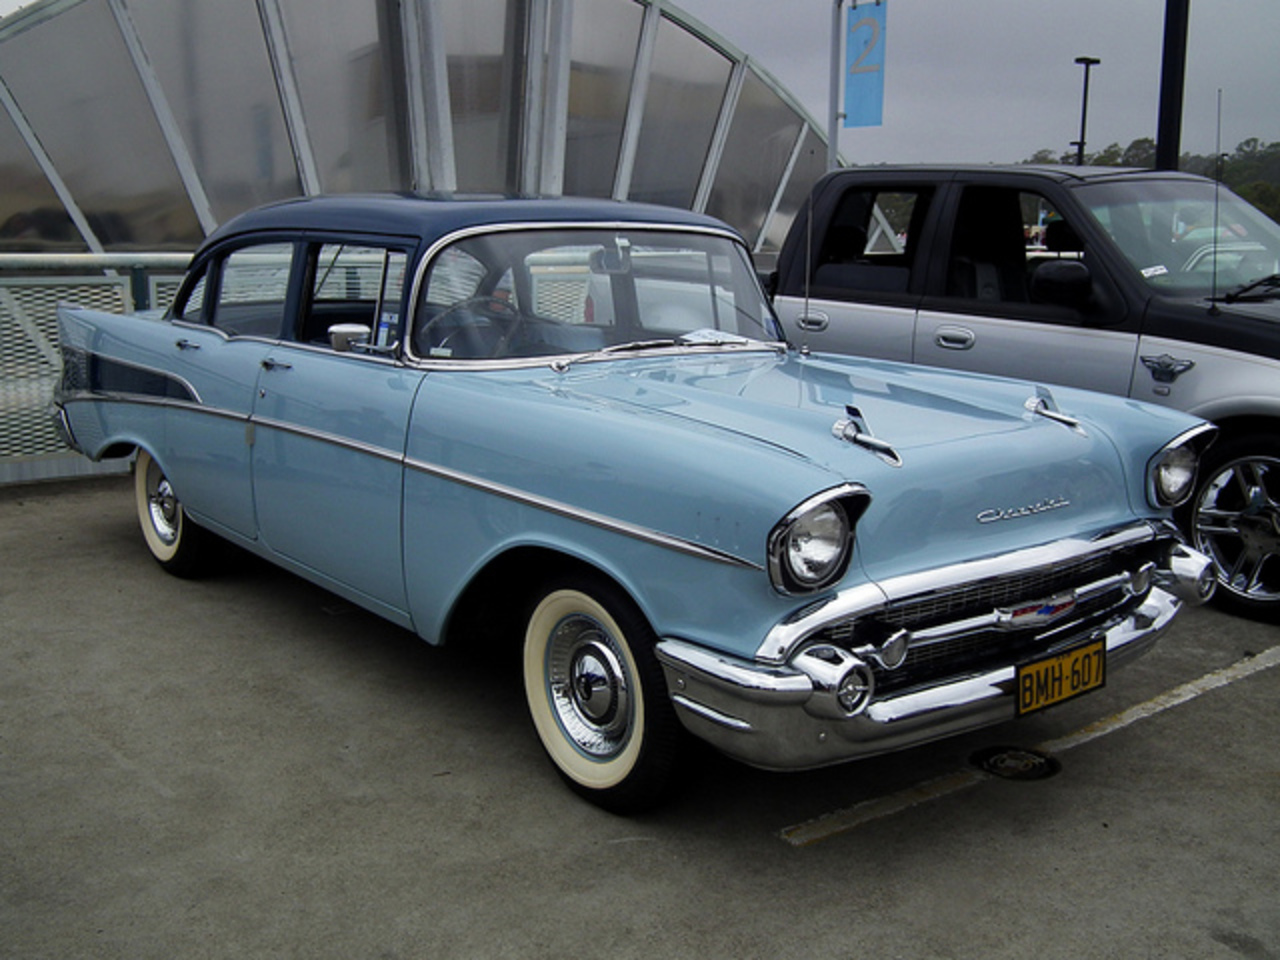 1957 Chevrolet 210 sedan (3) | Flickr - Photo Sharing!